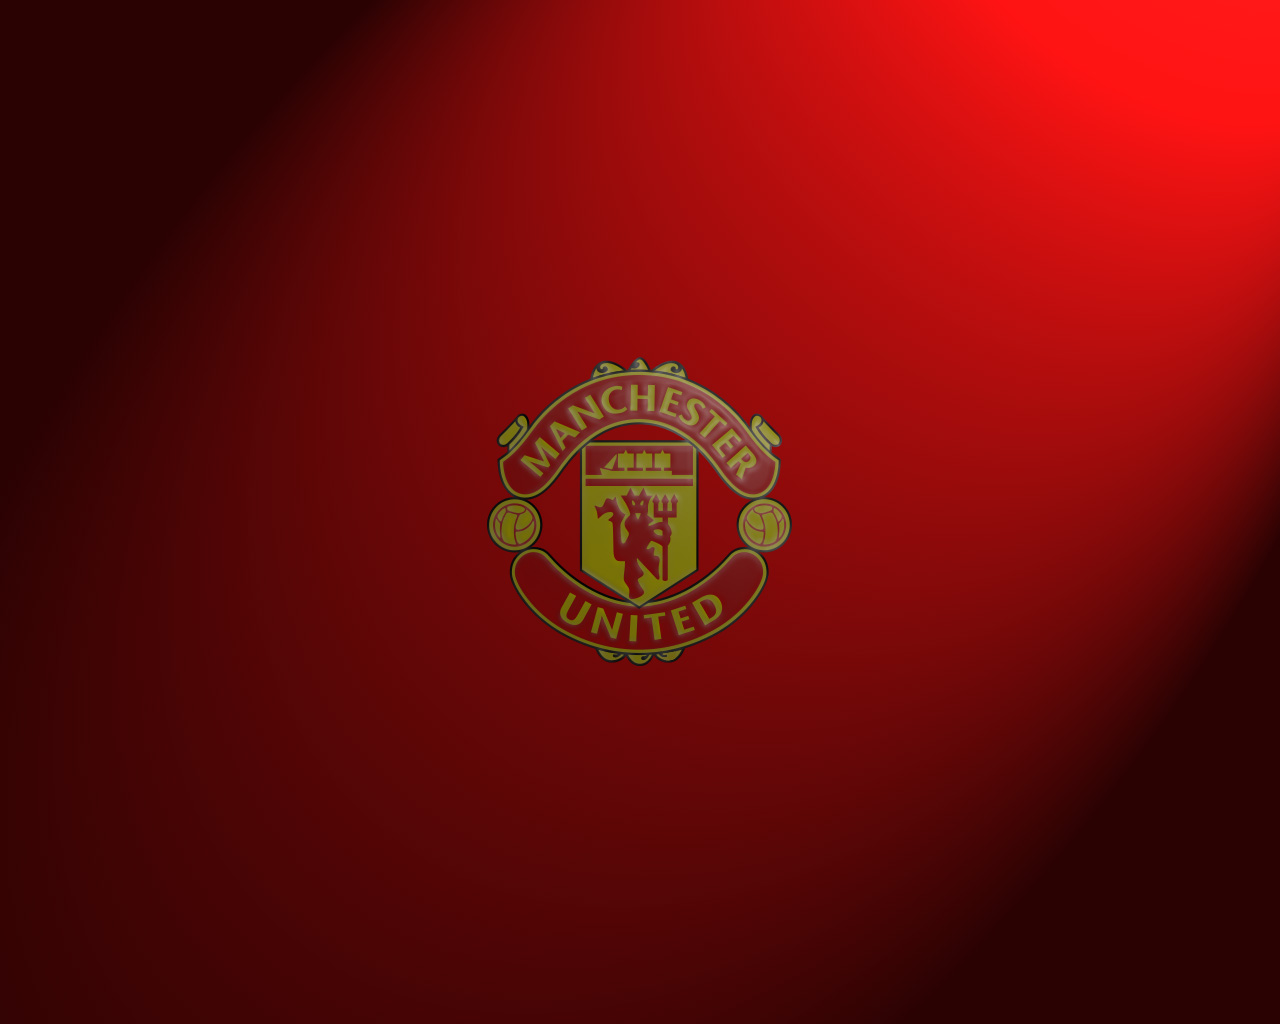 Manchester united logo wallpapers hd wallpaper 1280x1024 voltagebd Image collections